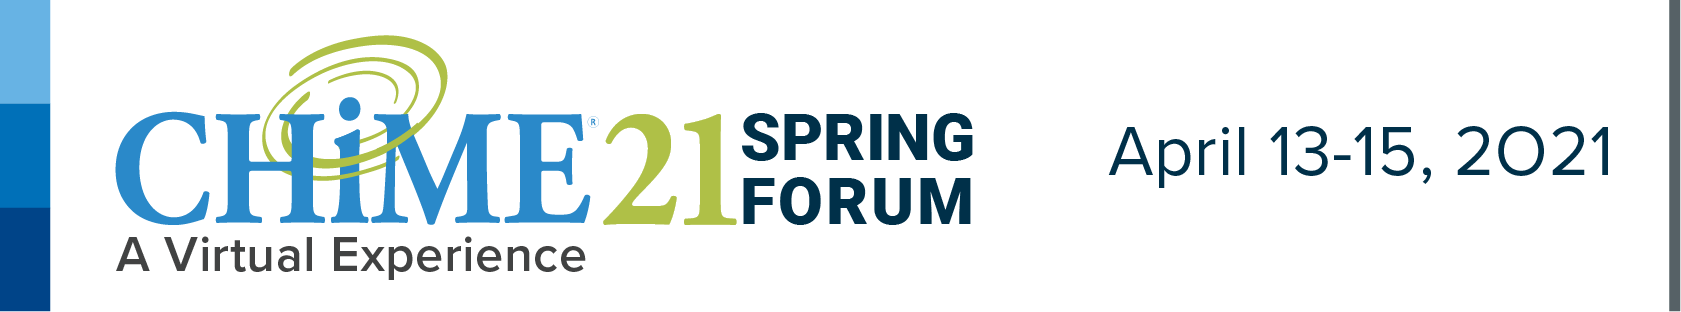 CHIME21 Spring Forum - A Virtual Experience